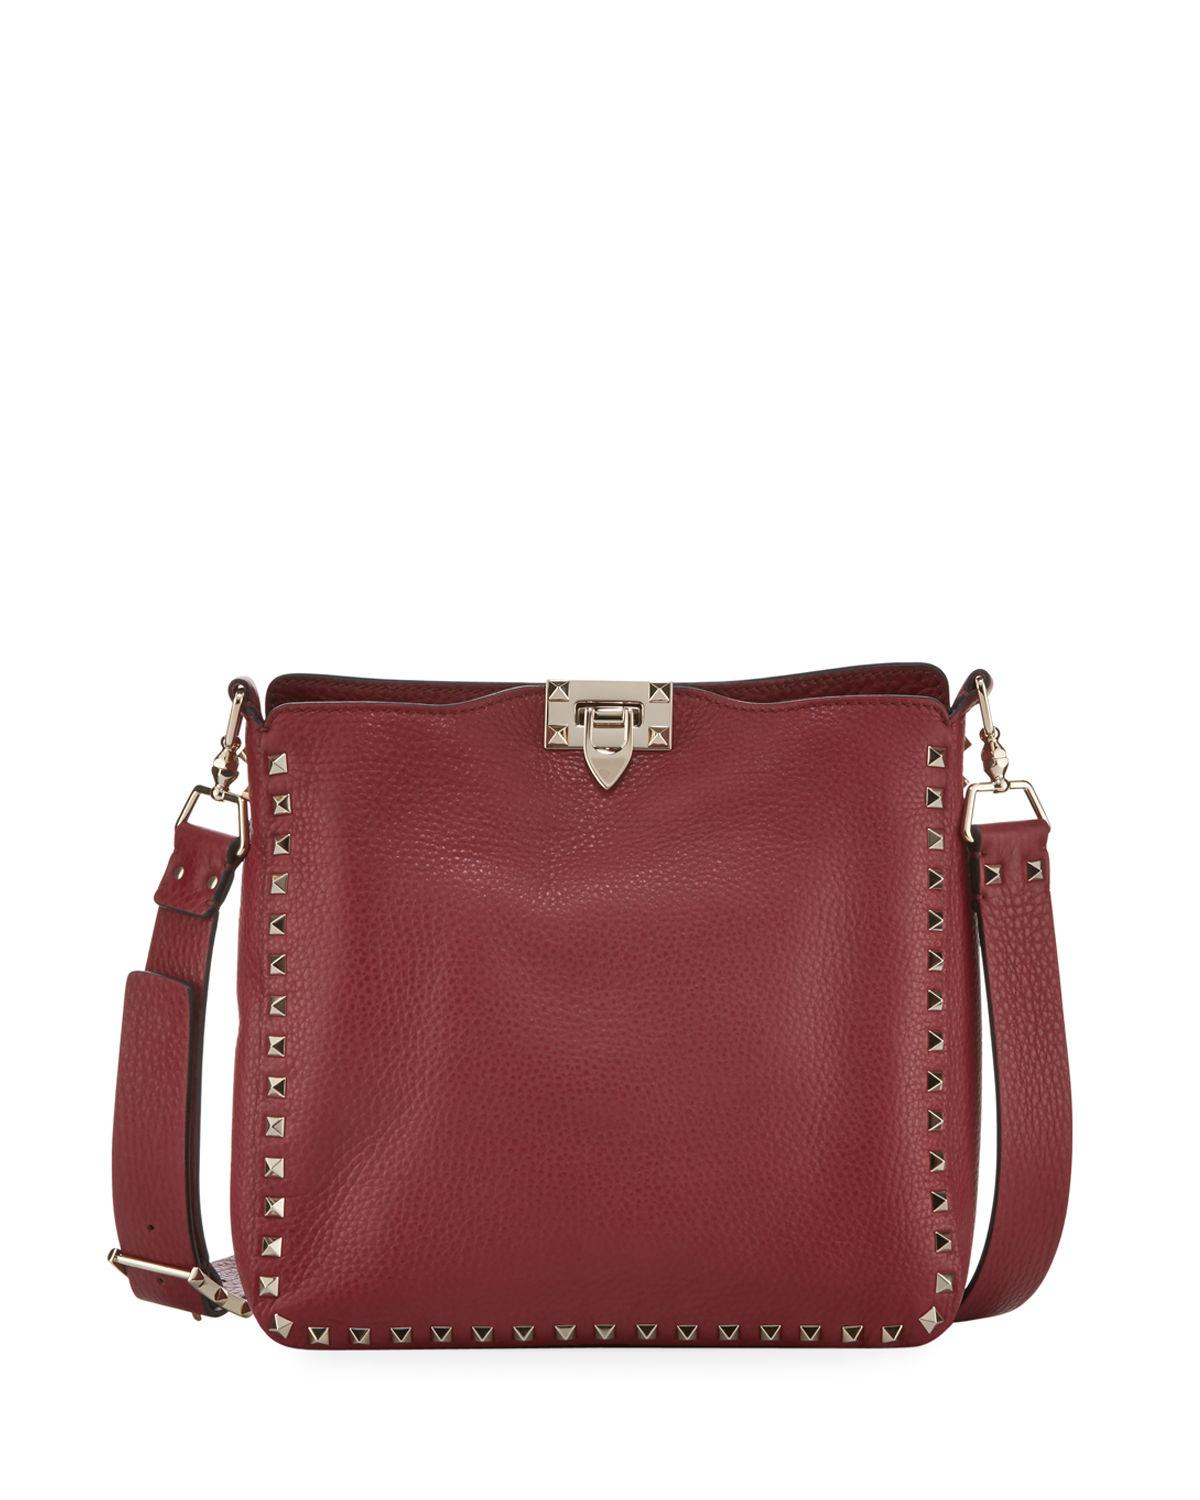 0b2467aab1 Lyst - Valentino Rockstud Small Hobo Bag in Blue